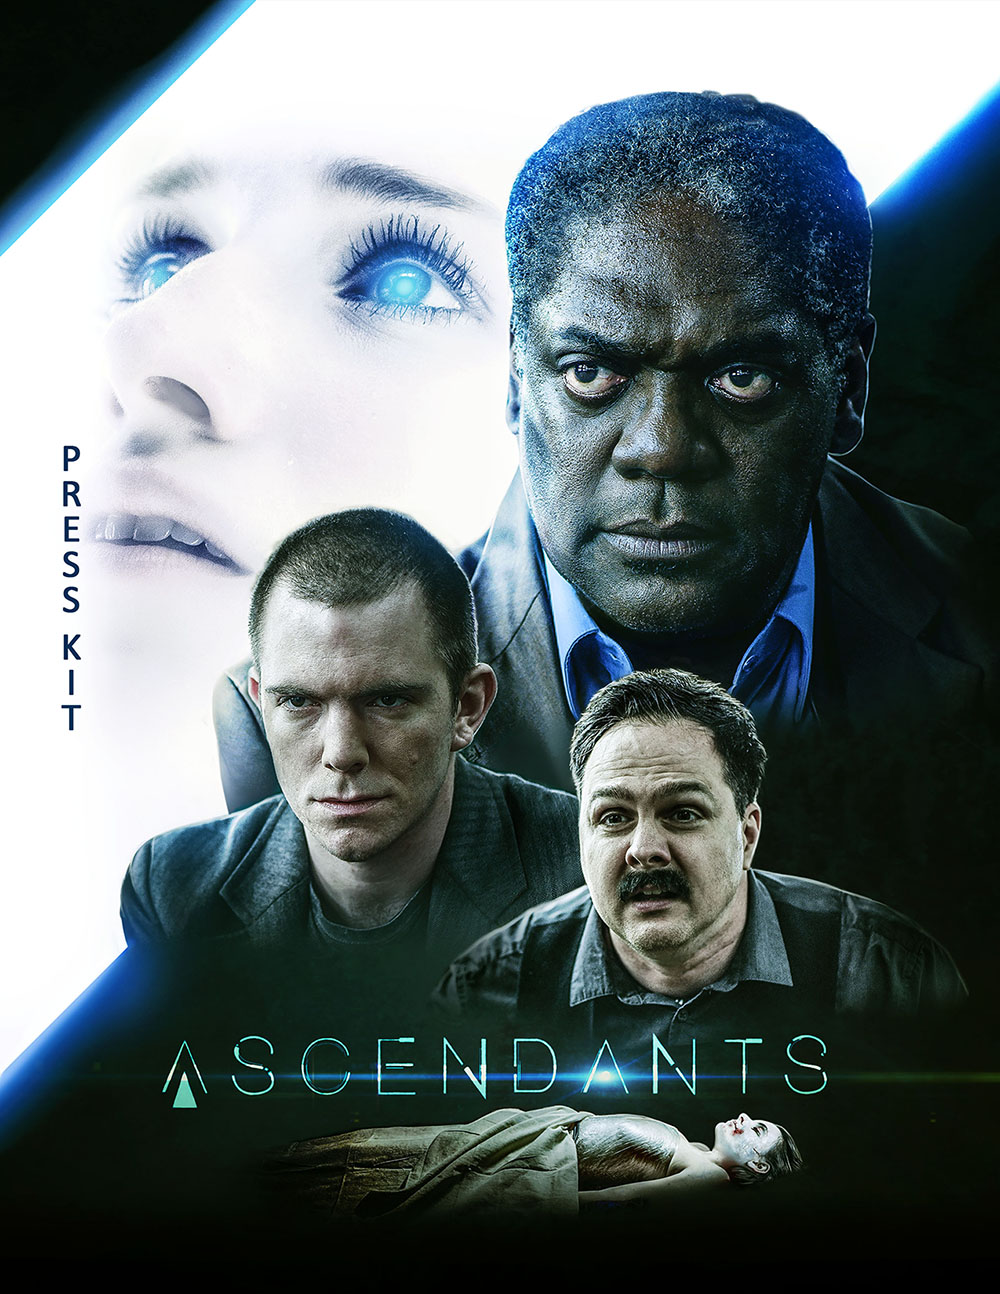 Ascendants Press Kit